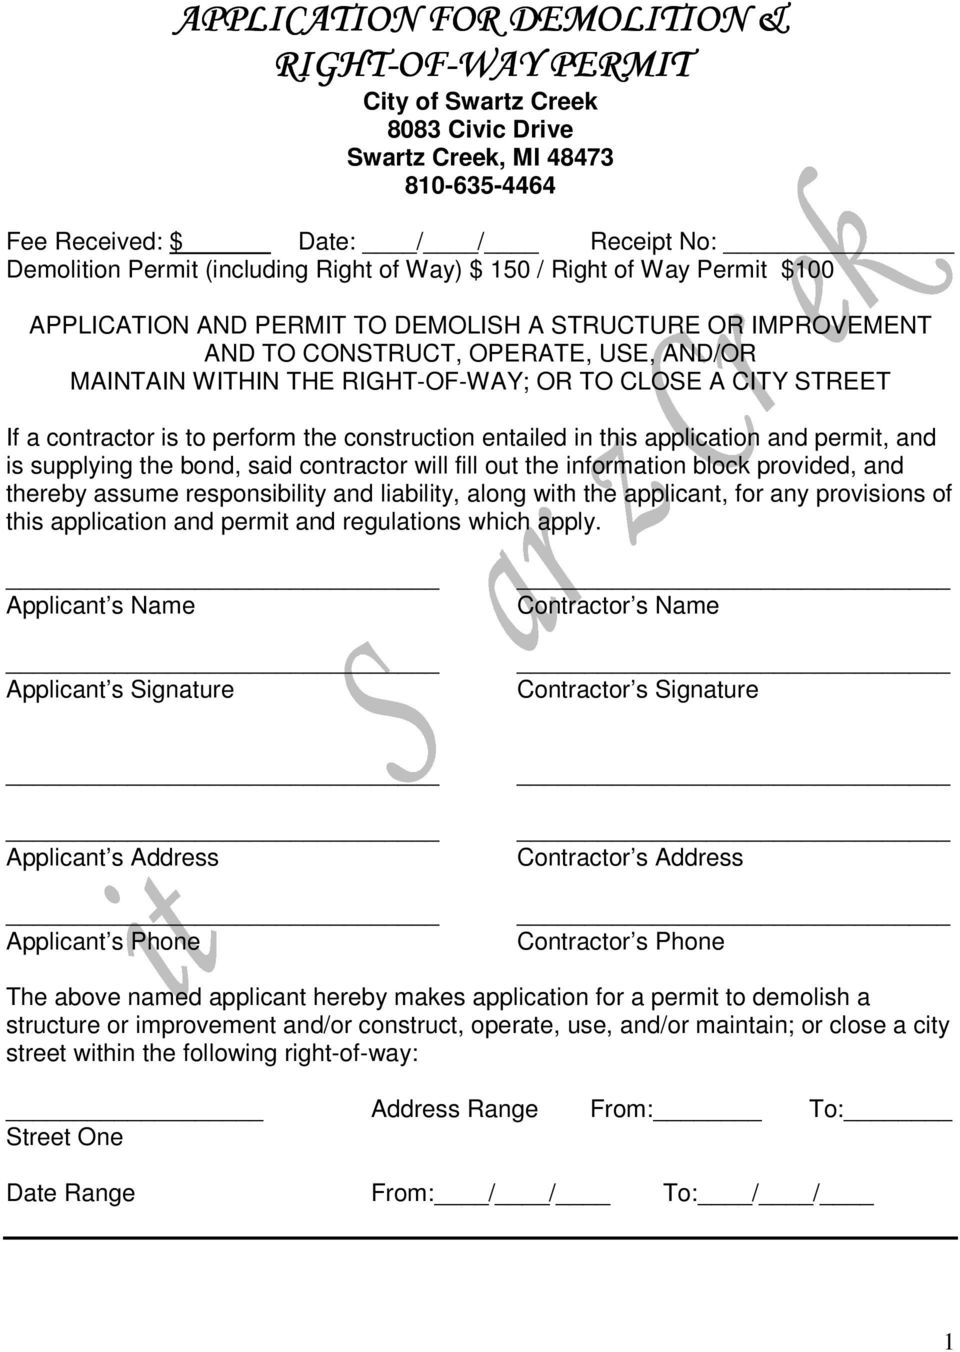 STREET If a contractor is to perform the construction entailed in this application and permit, and is supplying the bond, said contractor will fill out the information block provided, and thereby